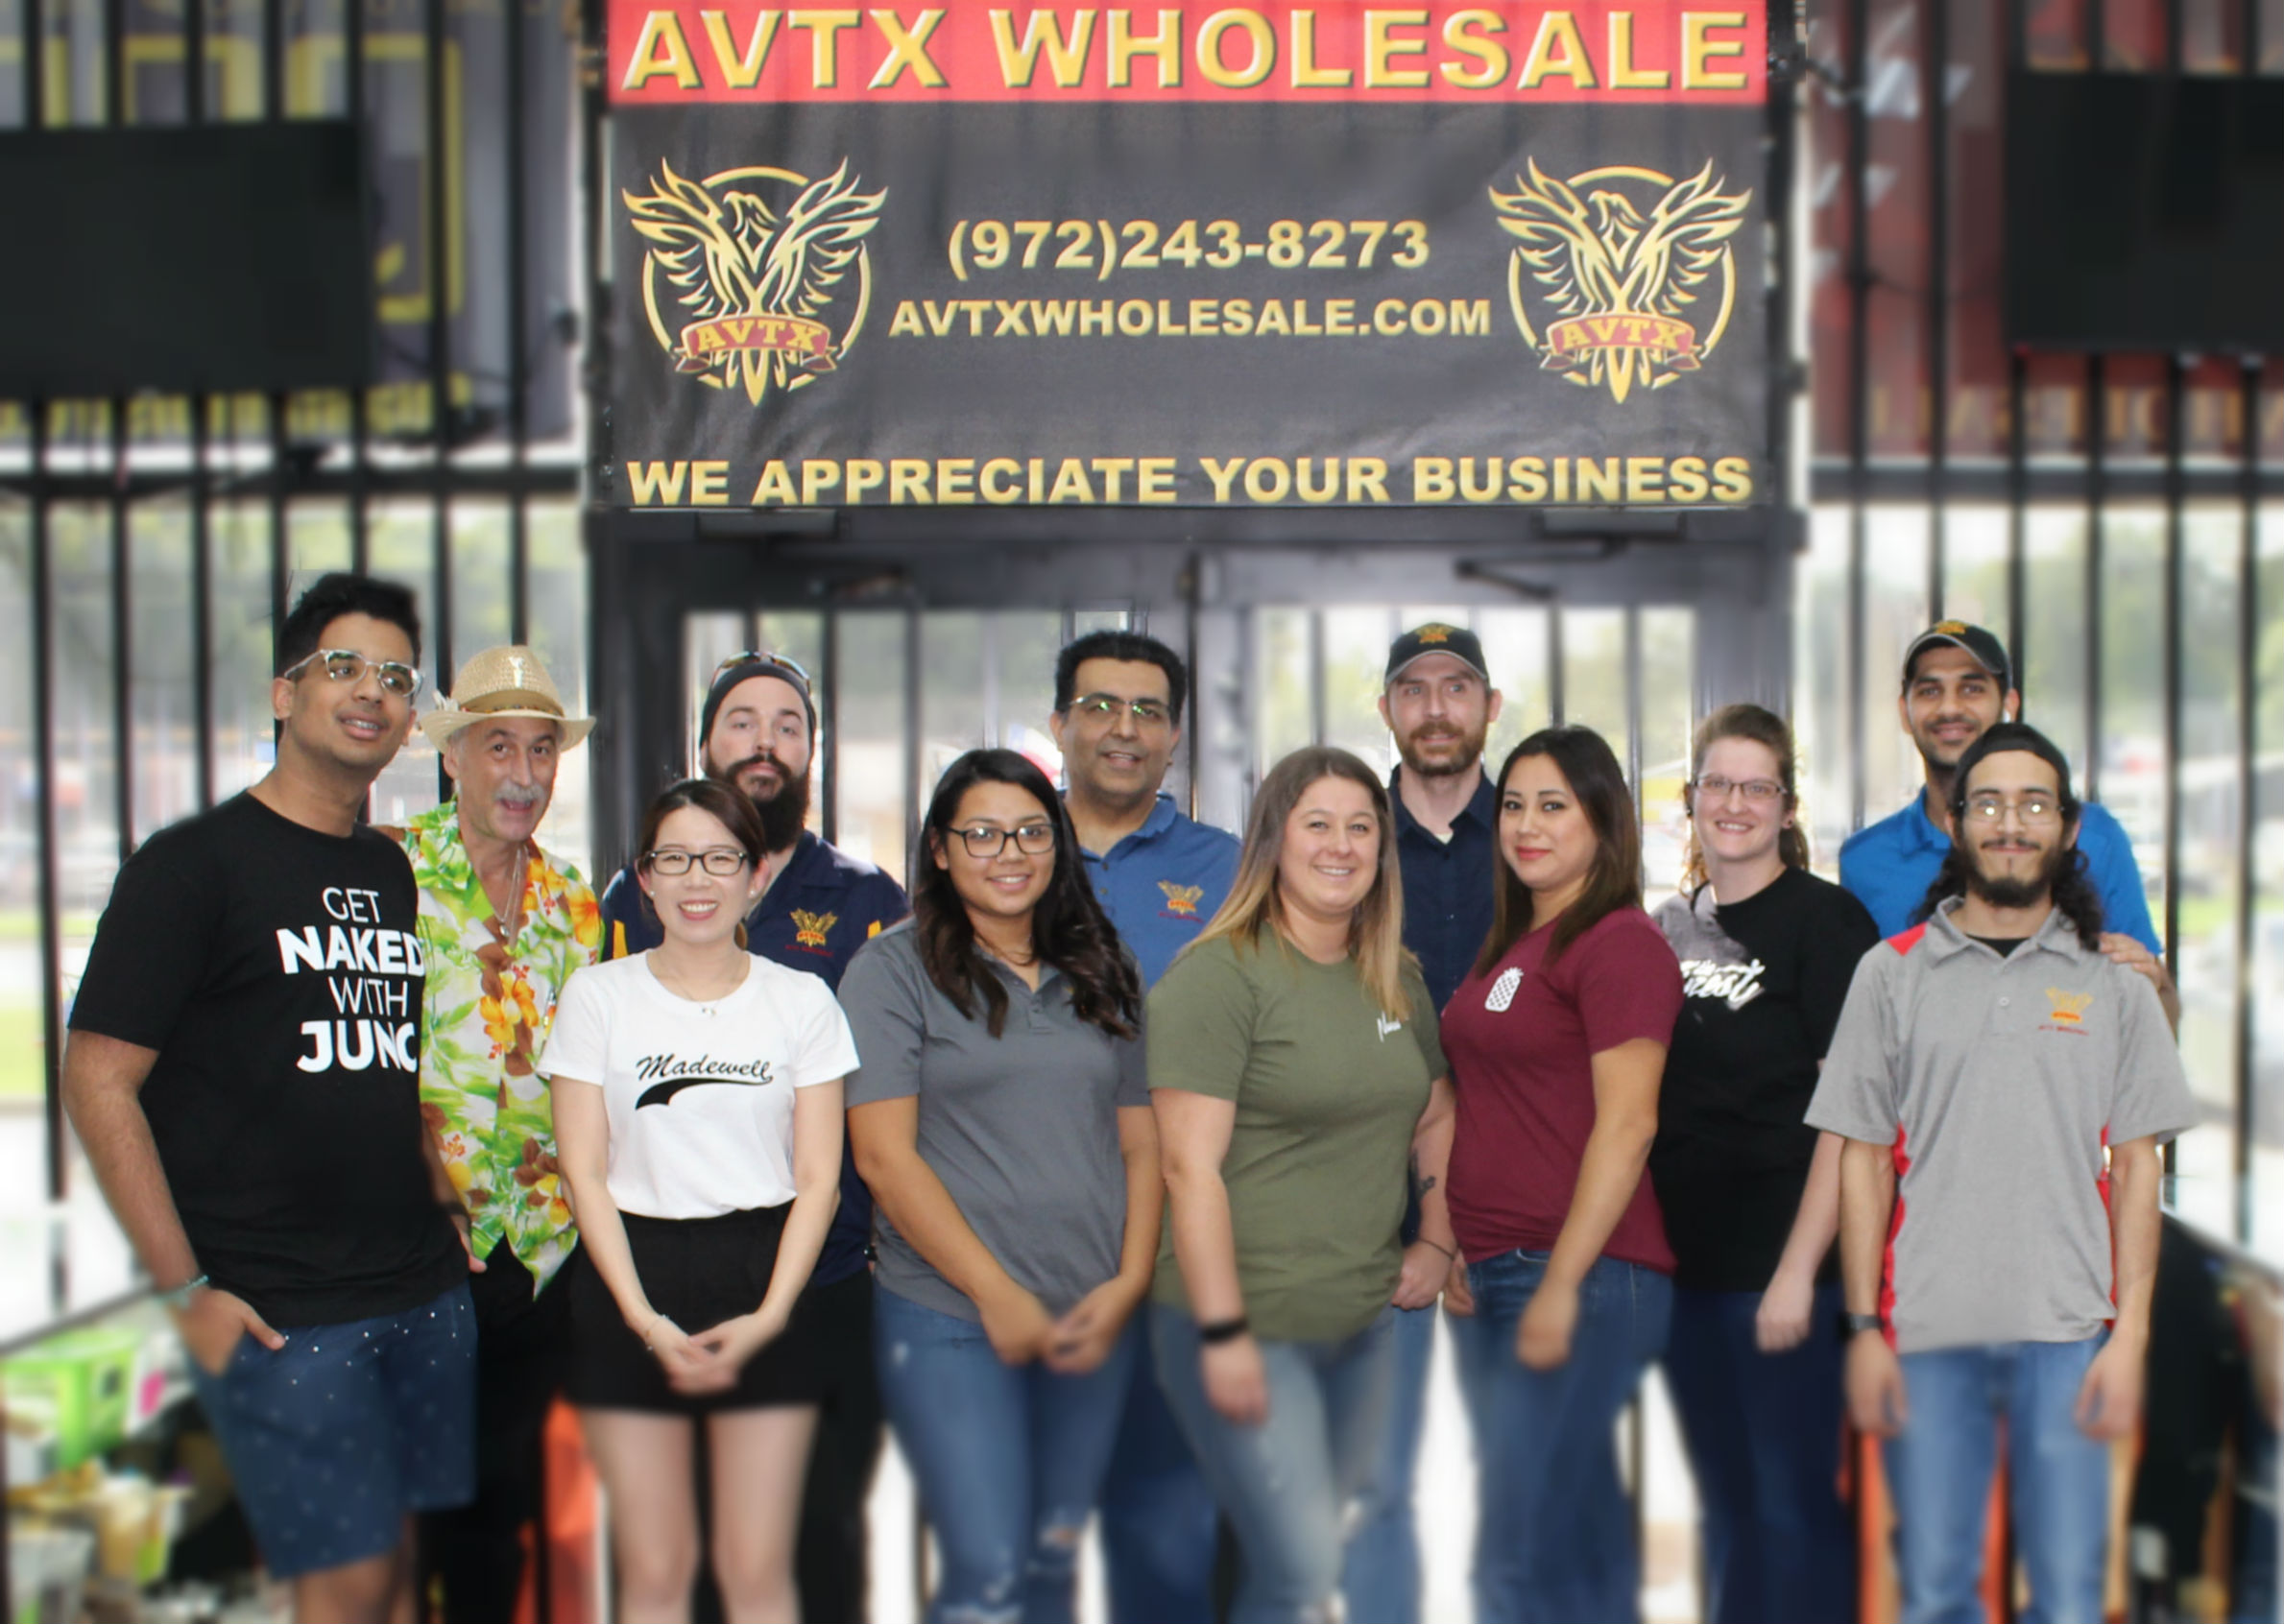 AVTX Wholesale B2B only wholesaler of Vape Supply - Meet Our Friendly Staff